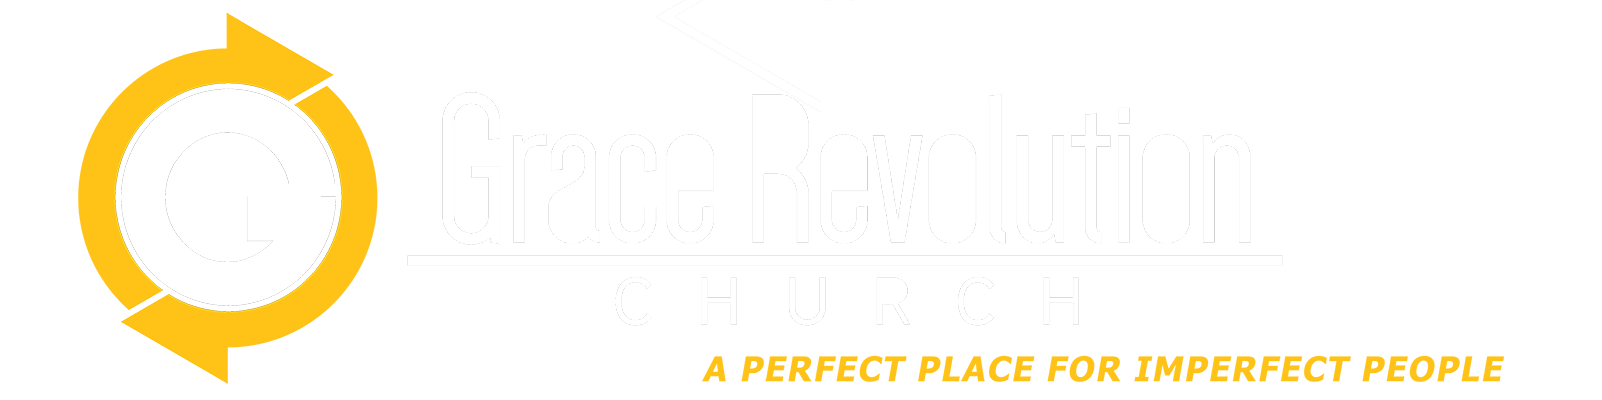 Grace Revolution Church